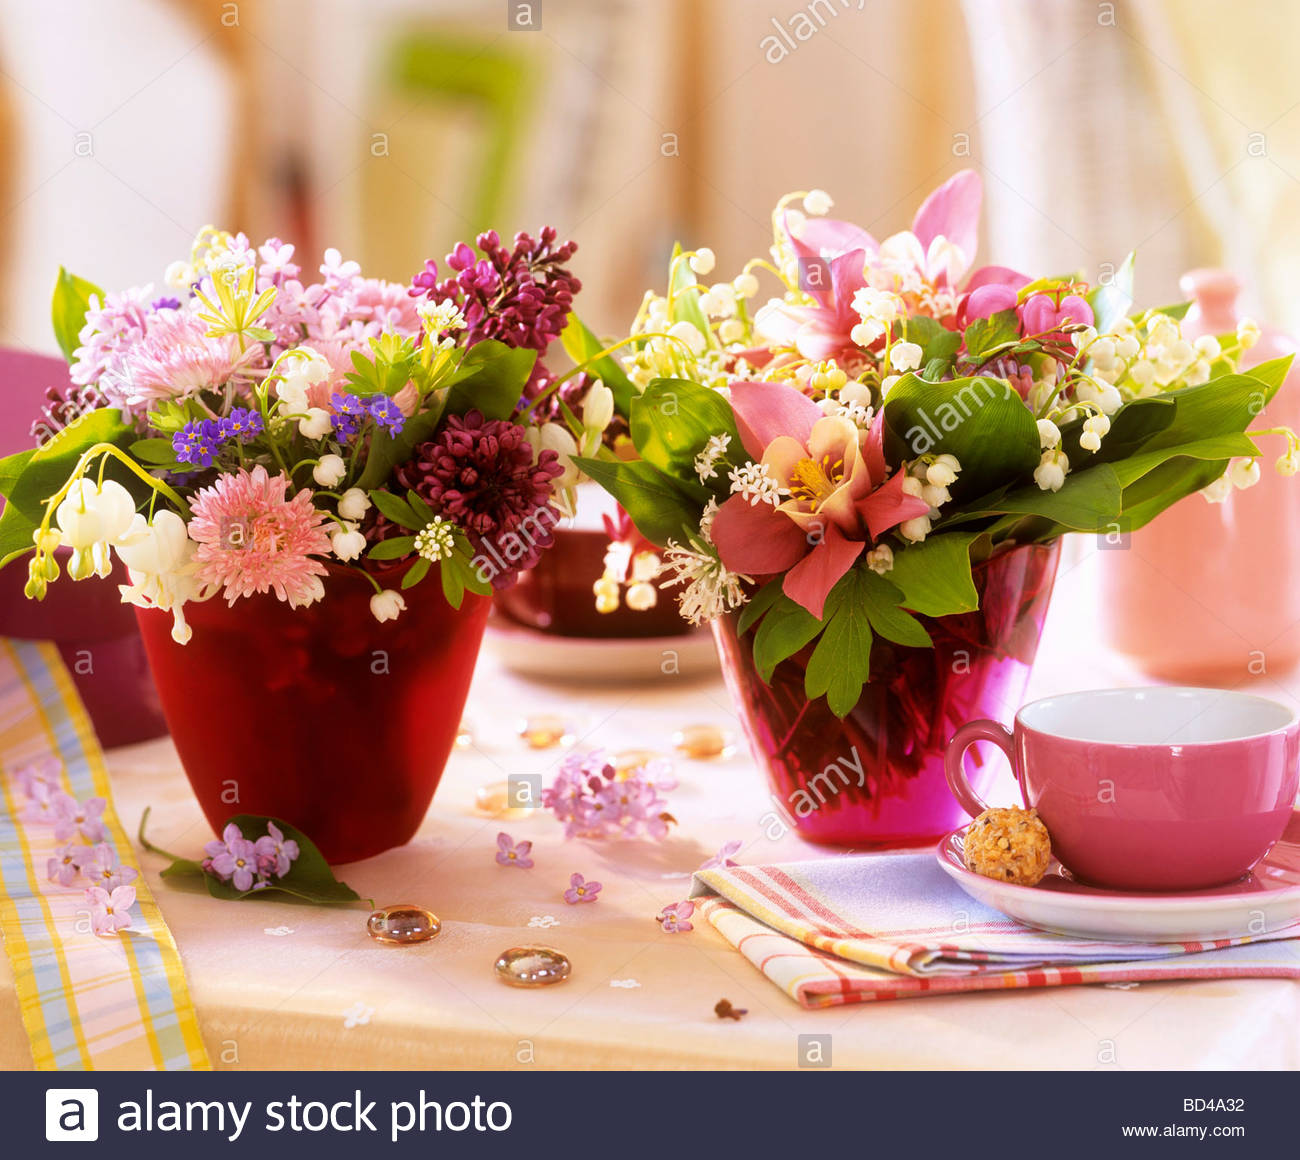 Small Posies Of Spring Flowers As Table Decoration Stock Photo